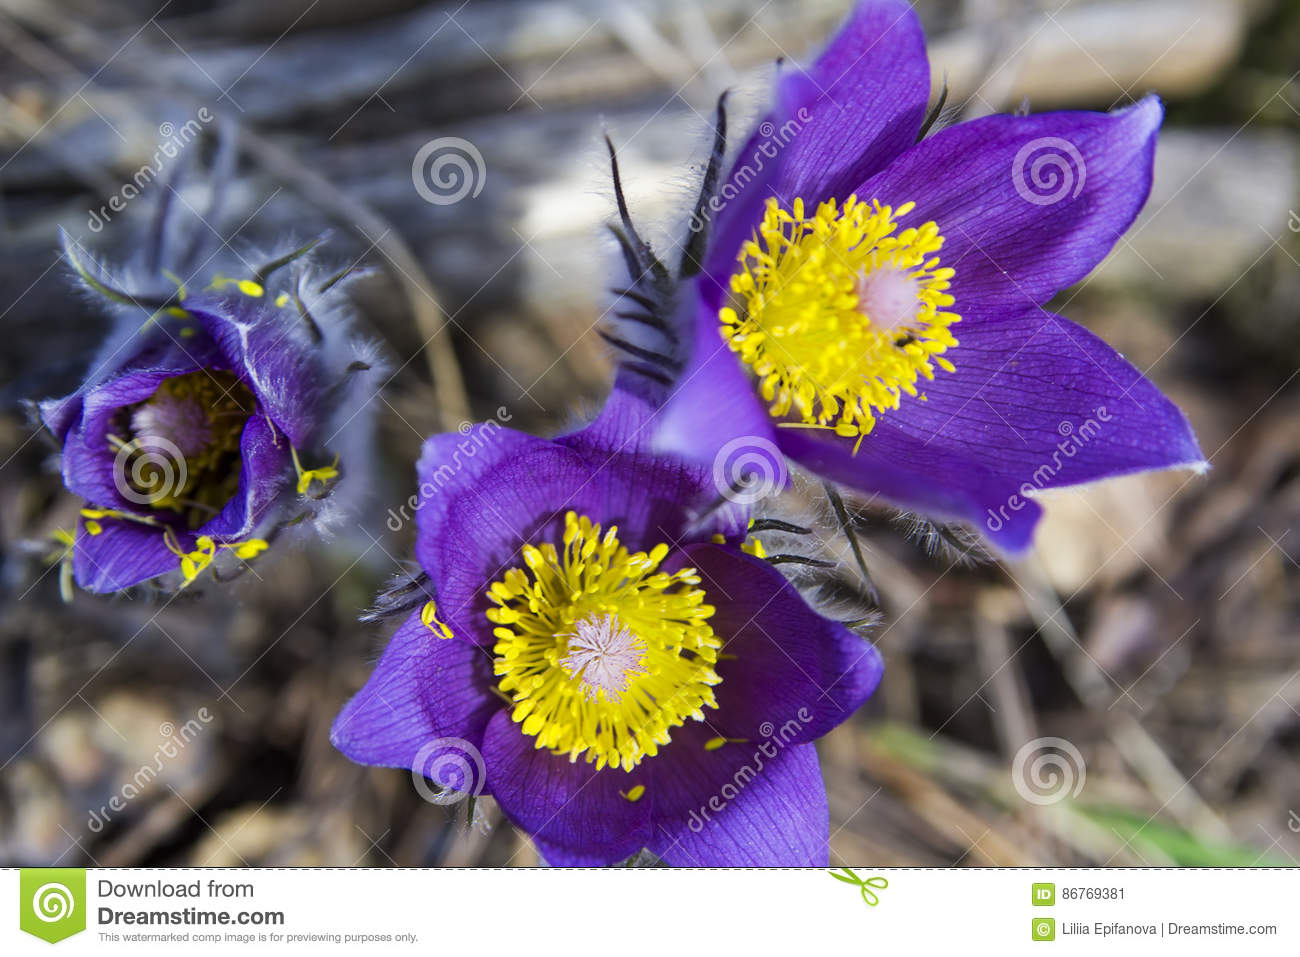 Background Wallpaper Pictures Group Of Purple Snowdrop Primroses Sleep Grass Stock Image Image Of Land Green 86769381